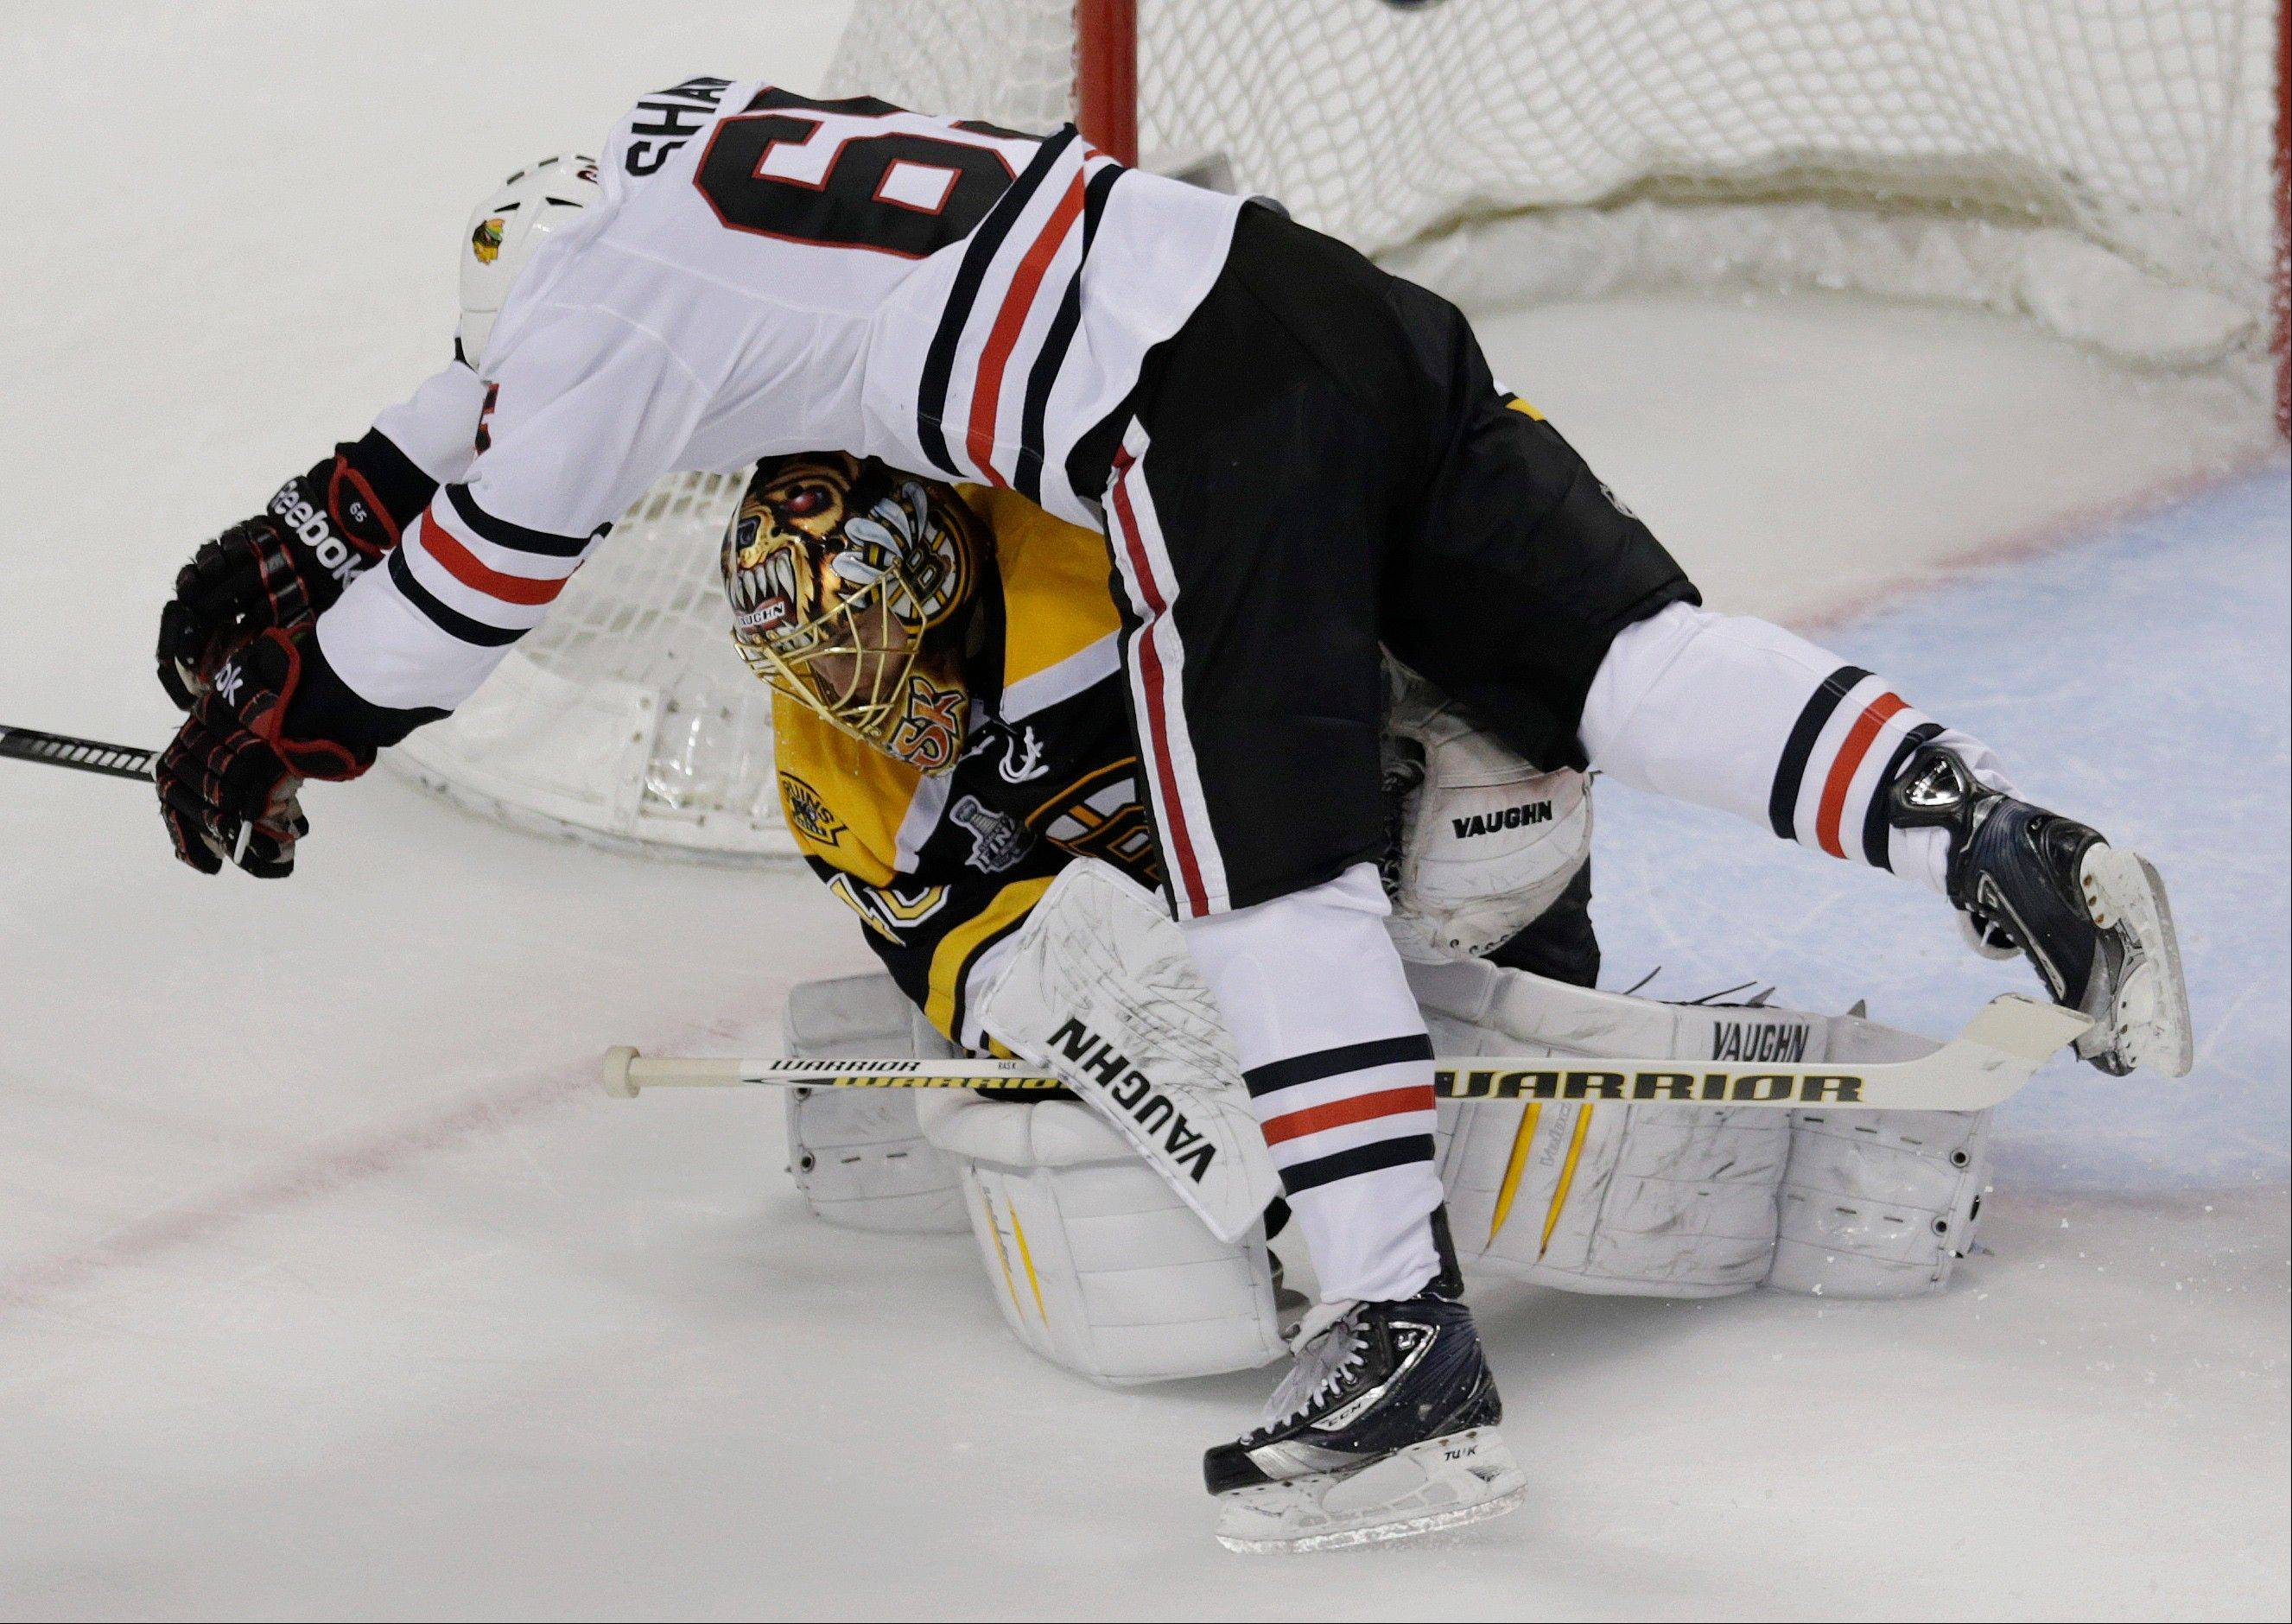 Chicago Blackhawks center Andrew Shaw (65) collides with Boston Bruins goalie Tuukka Rask, underneath, of Finland, during the first period in Game 3 of the NHL hockey Stanley Cup Finals.